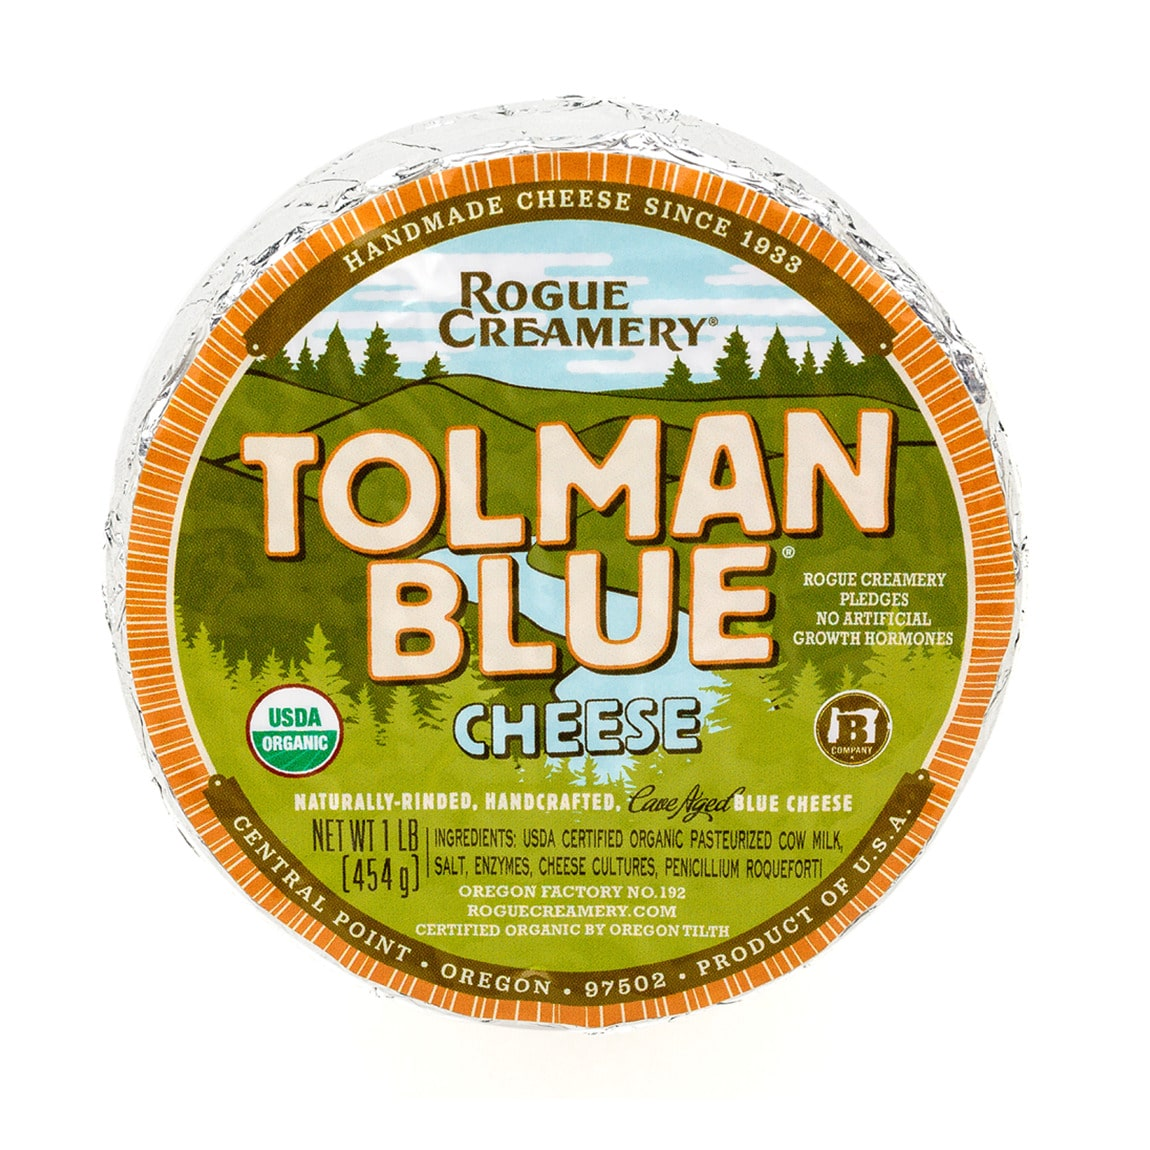 Rogue creamery tolman blue cheese packaging